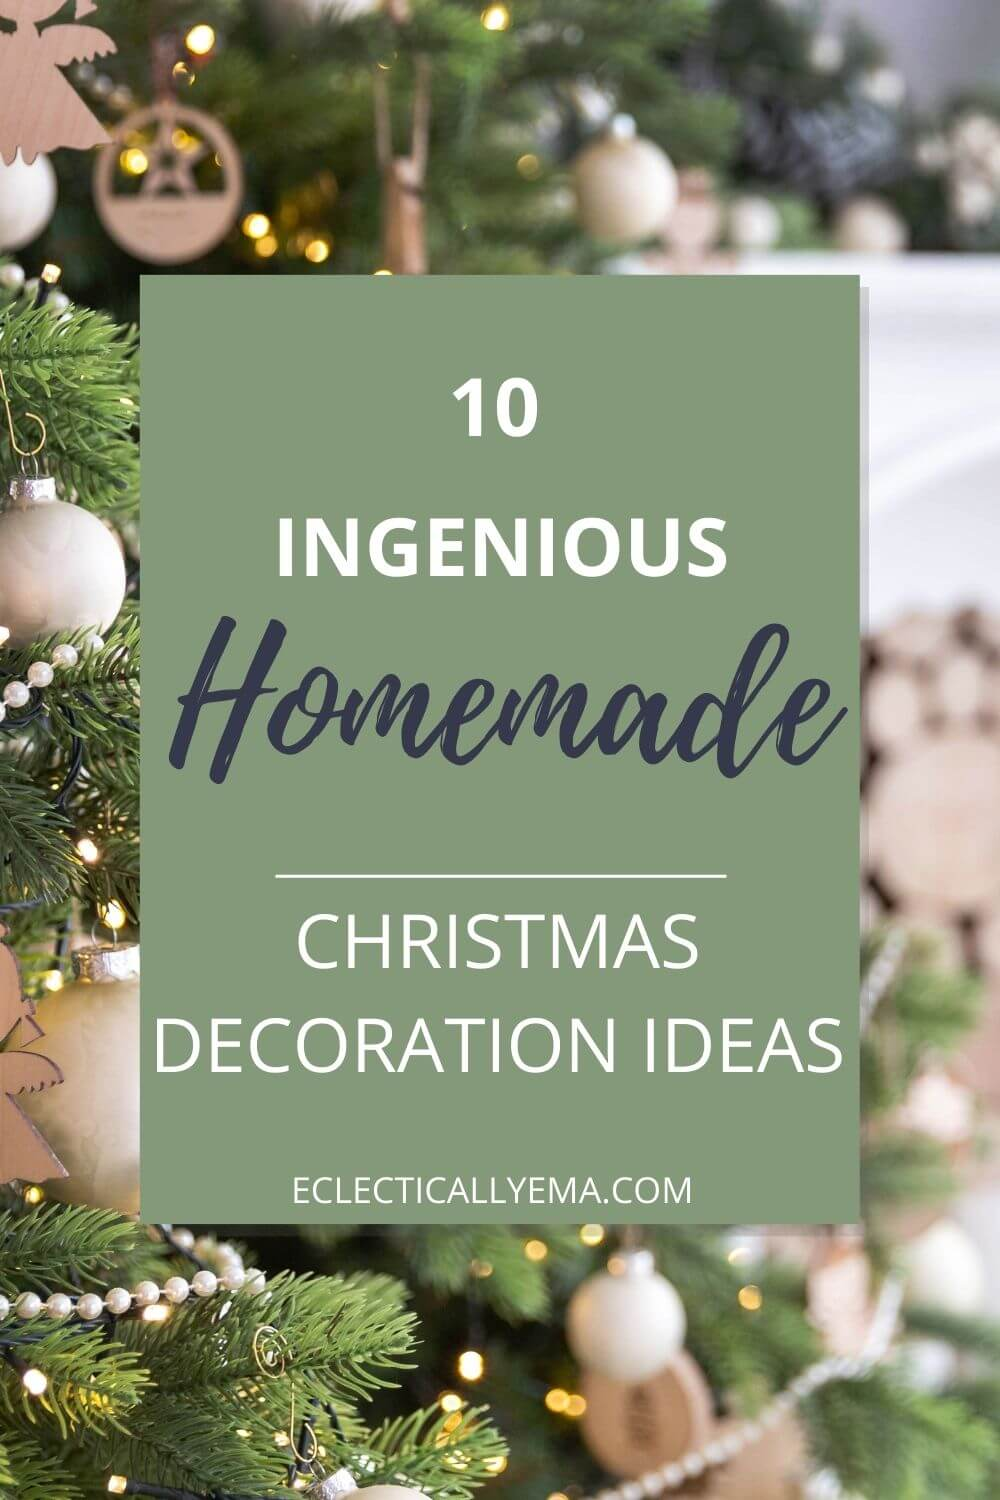 10 Easy Homemade Christmas Decoration Ideas Your Kids Can Help With